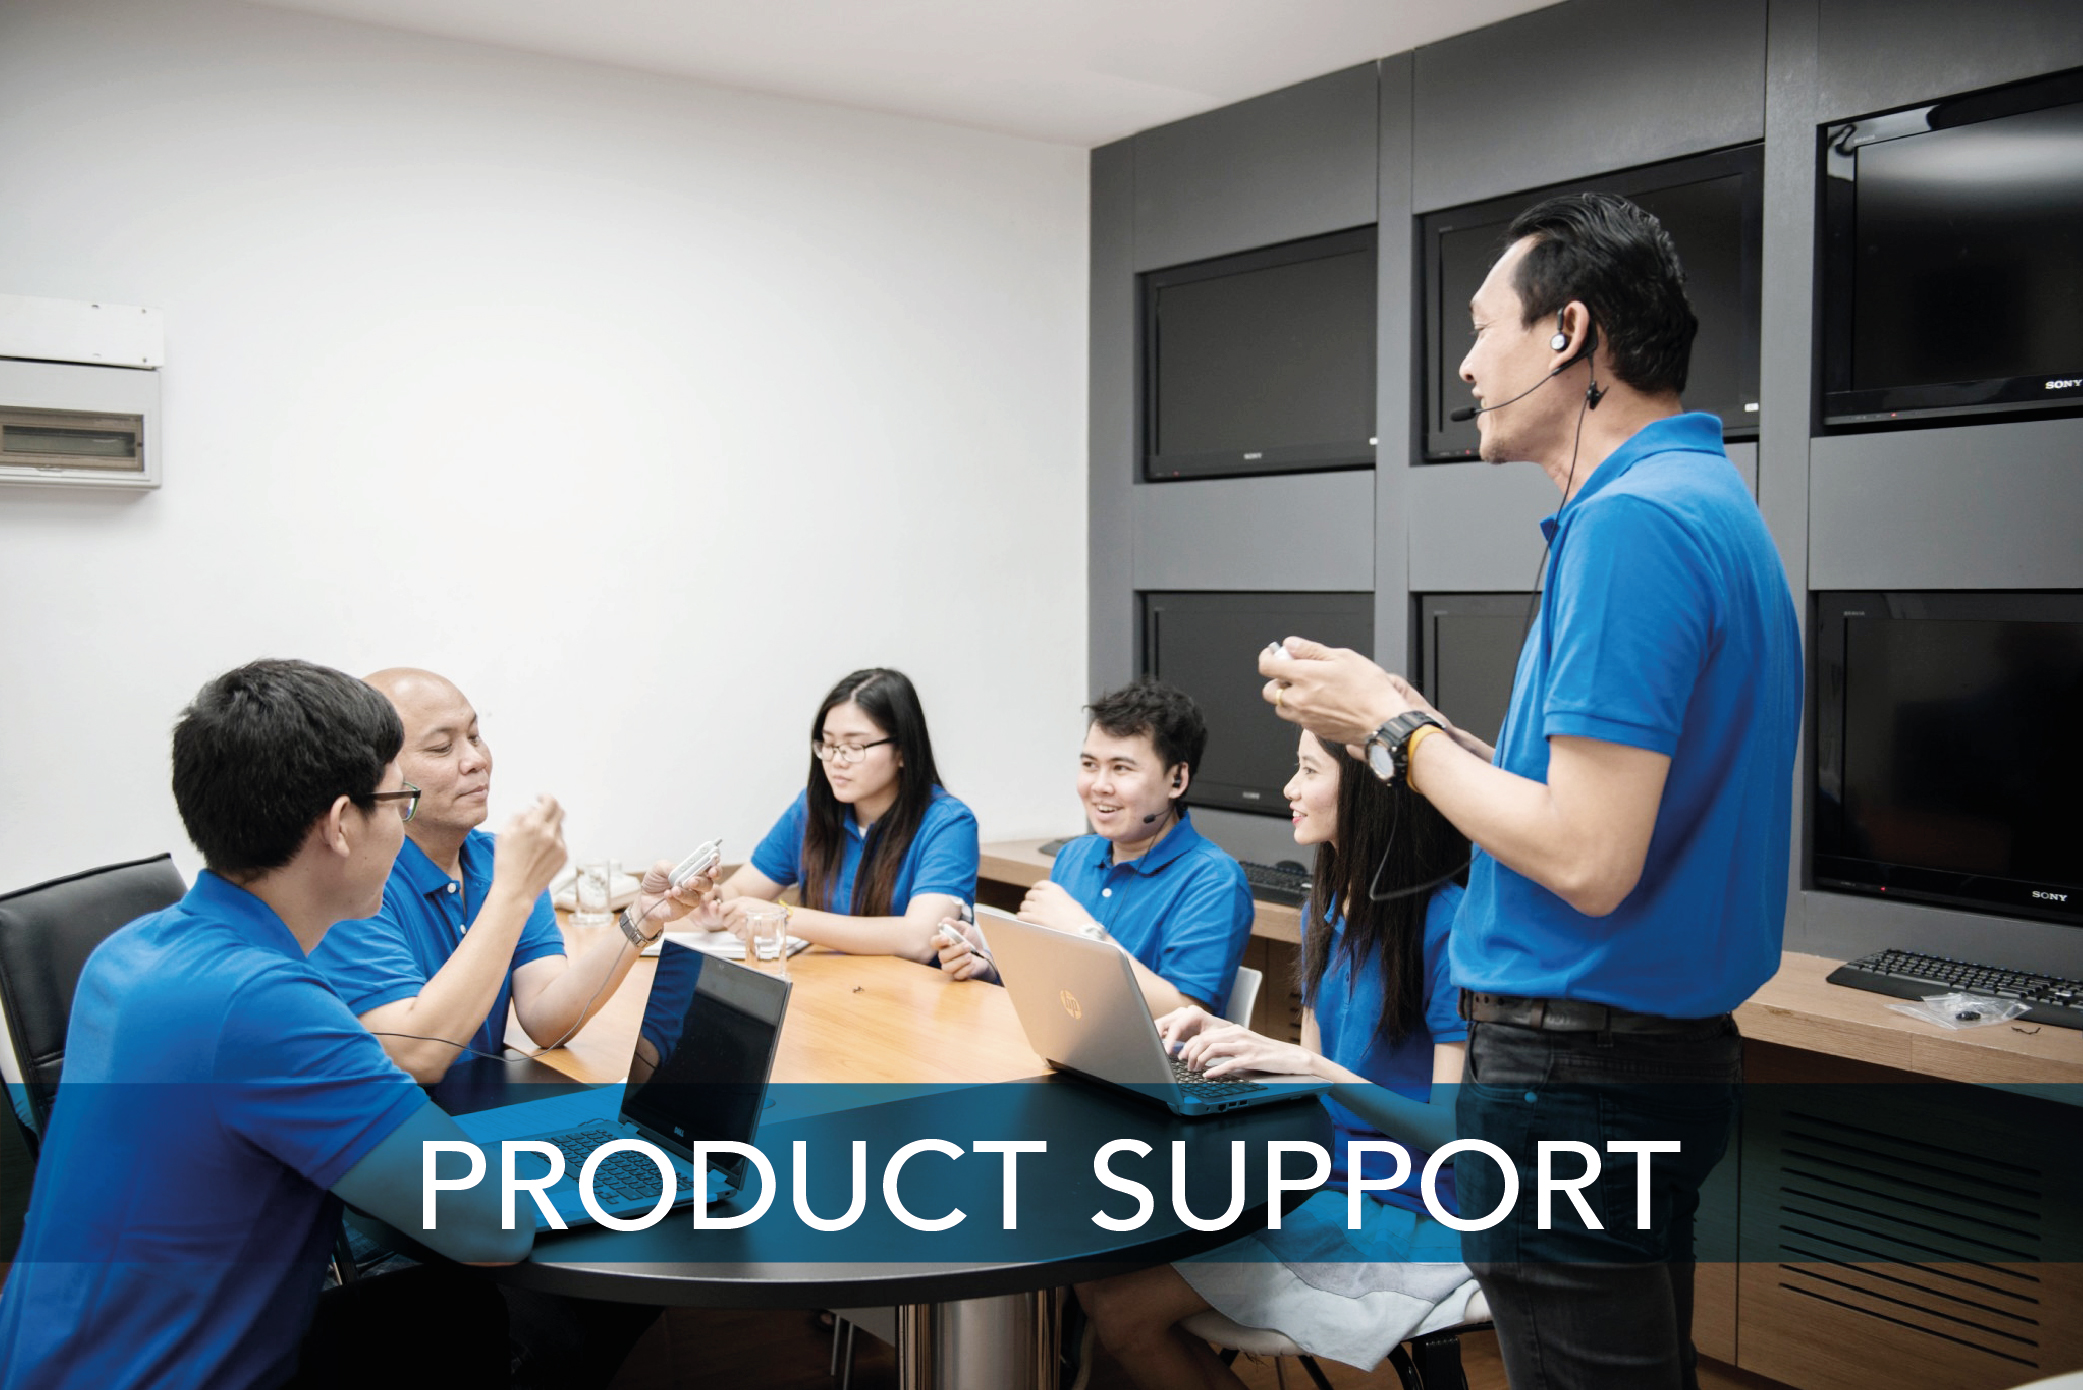 PRODUCT SUPPORT